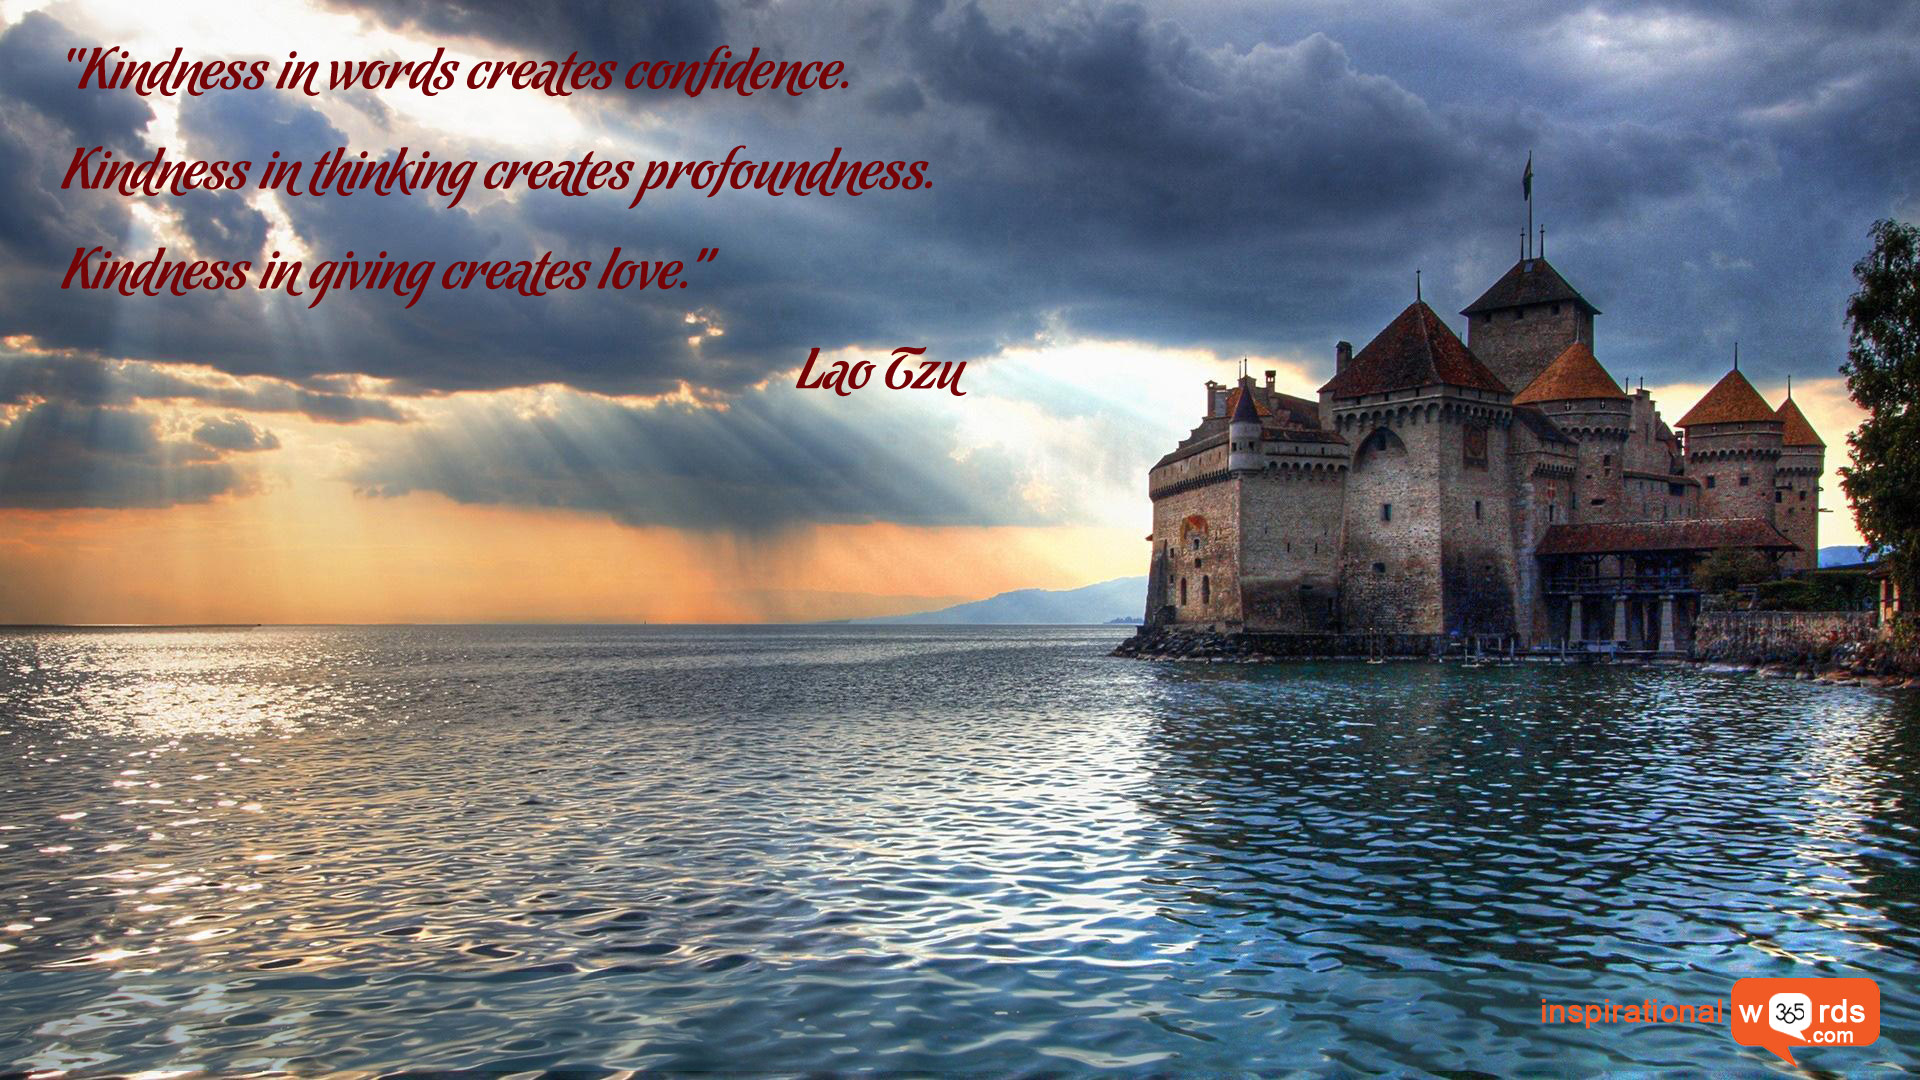 Inspirational Wallpaper Quote by Lao Tzu